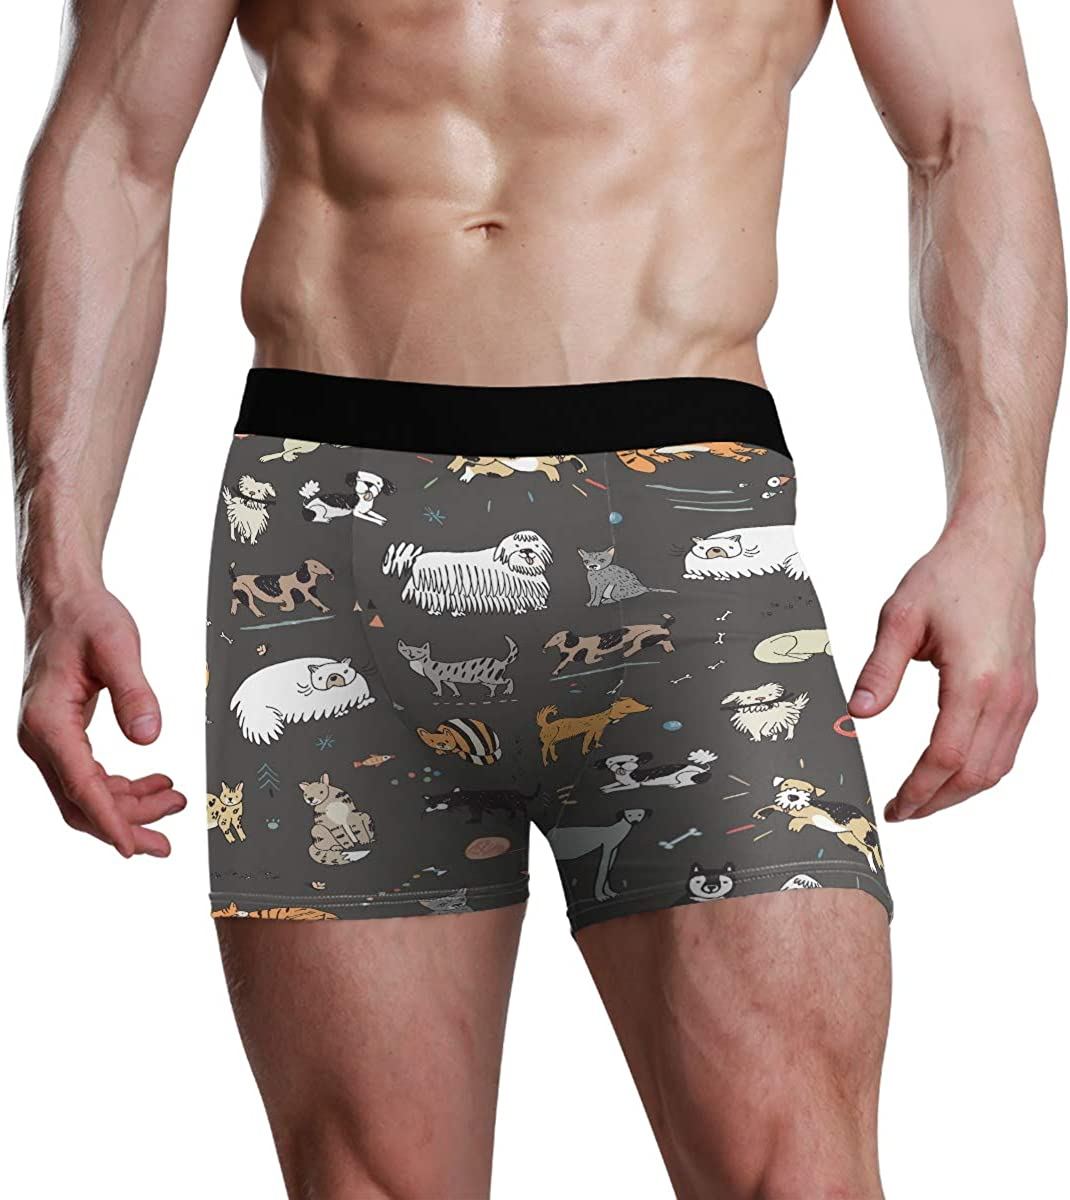 Mens Underwear Boxers Different Doodle Cats and Dogs Seamless Pattern ComfortSoft Boxer Briefs Breathable Bikini